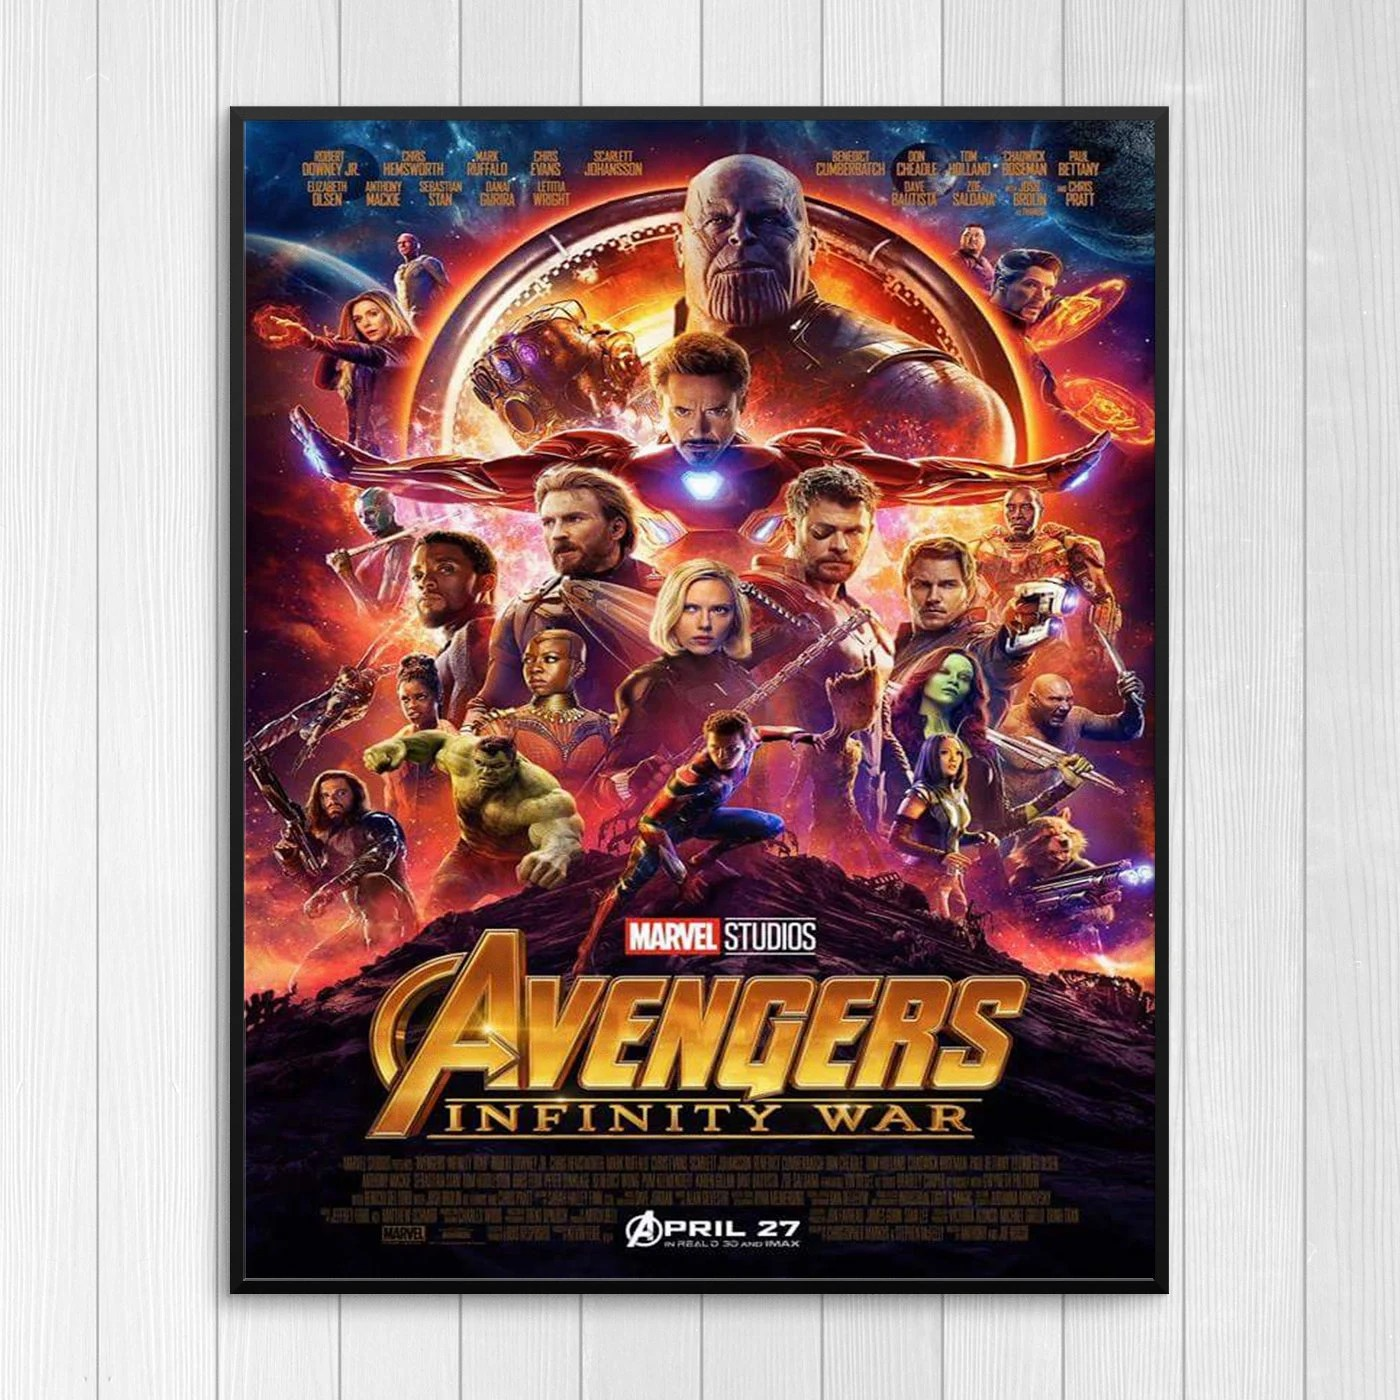 marvels avengers infinity war movie poster print infinity war 2 2019 wall art films cinema a6 a5 a4 a3 a2 maxi home decor pictures